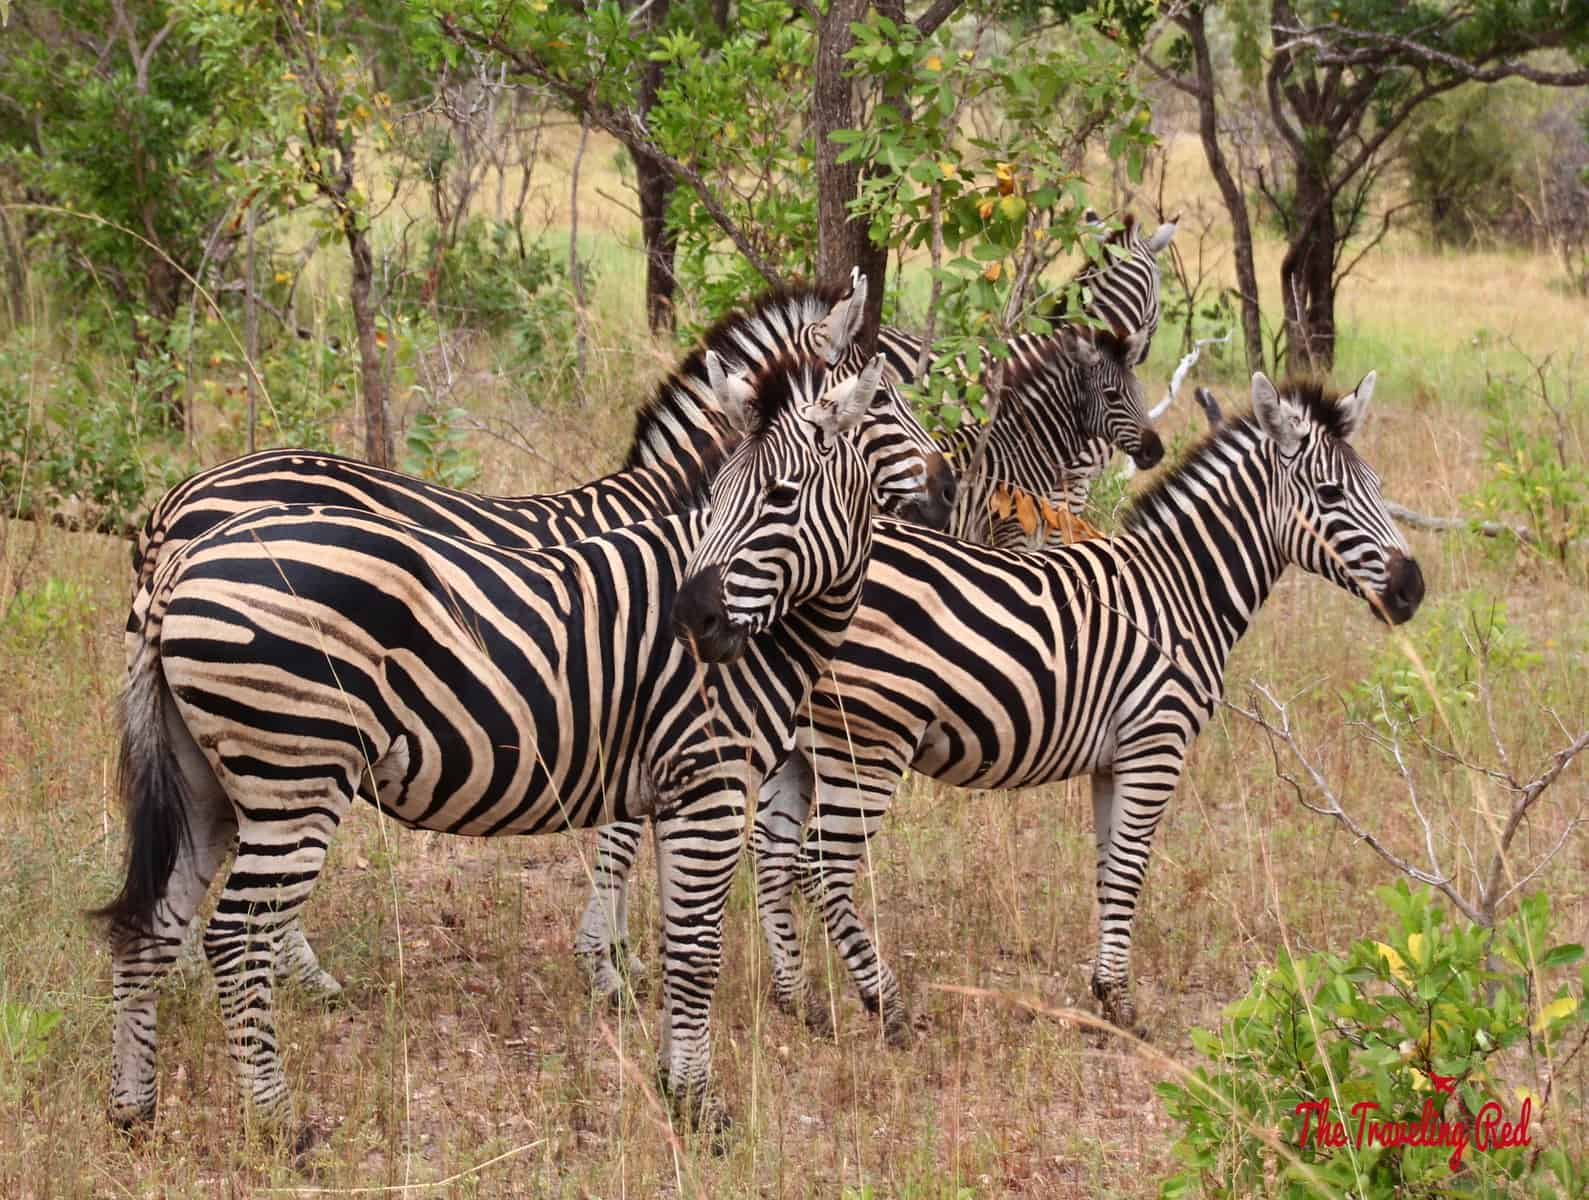 Zebras in South Africa